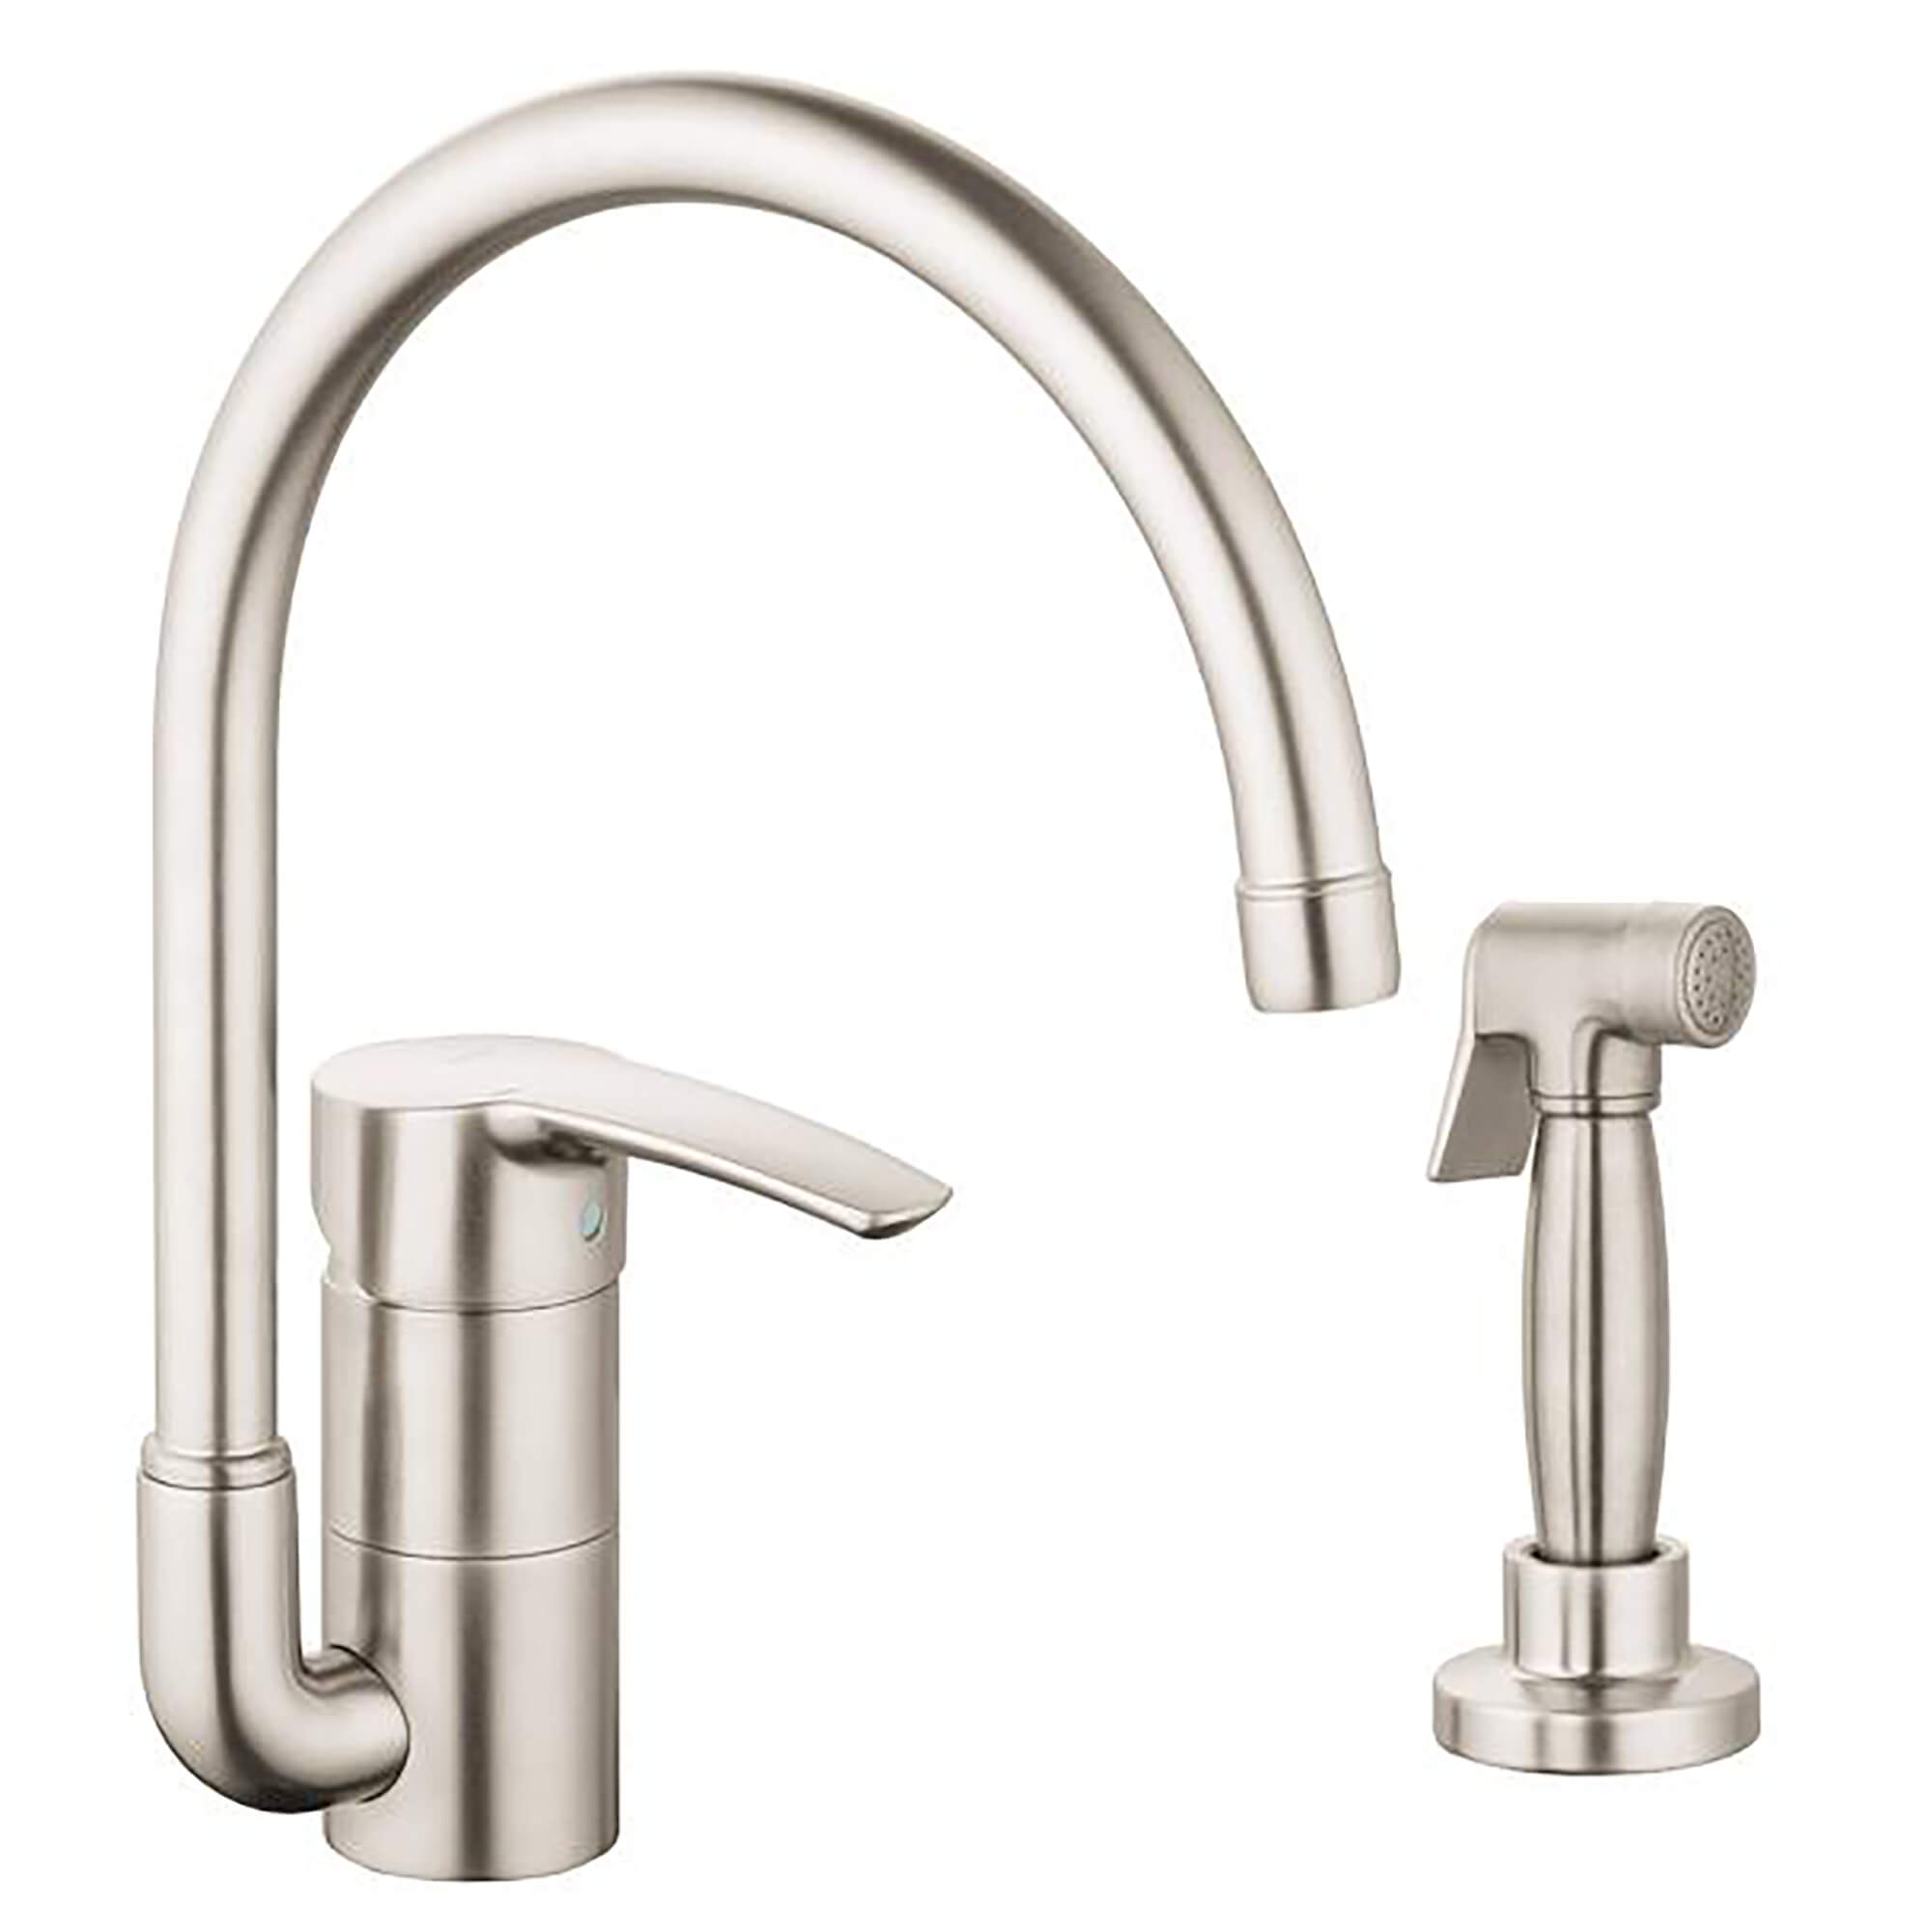 single handle kitchen faucet 1 75 gpm with swivel spout and side spray